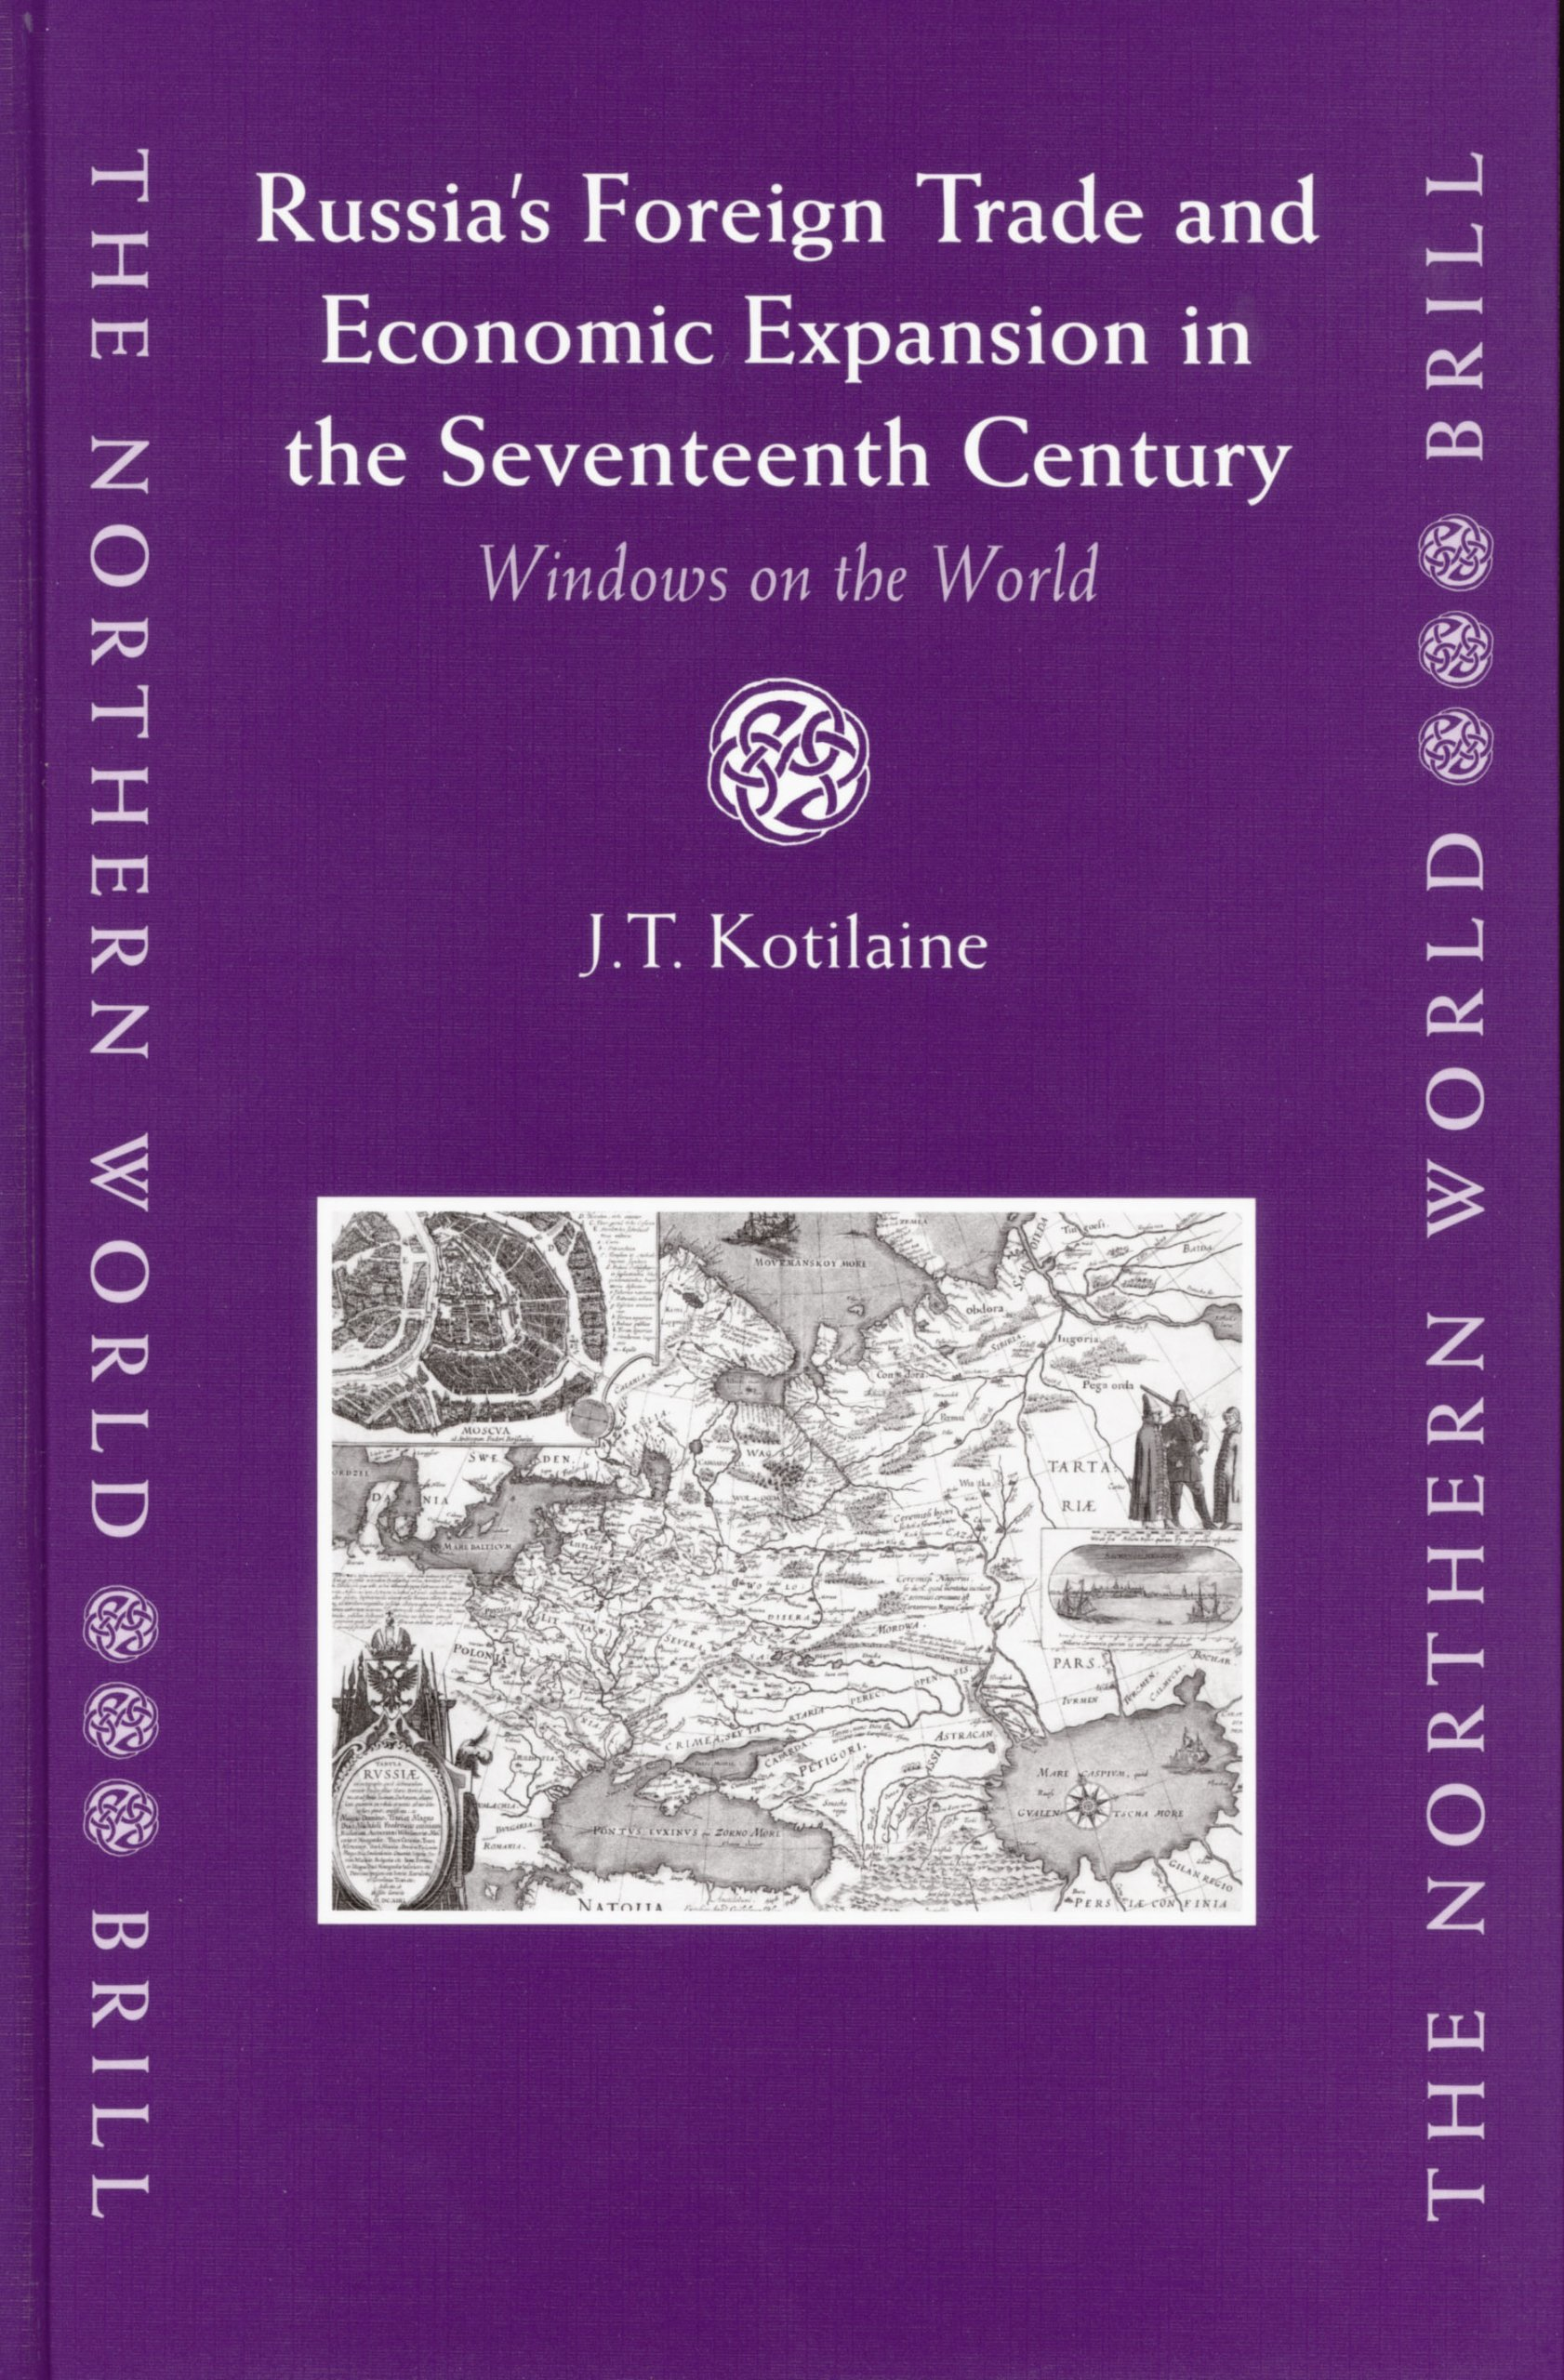 Russia's Foreign Trade and Economic Expansion in the Seventeenth Century: Windows on the World (Northern World) (No. 13)